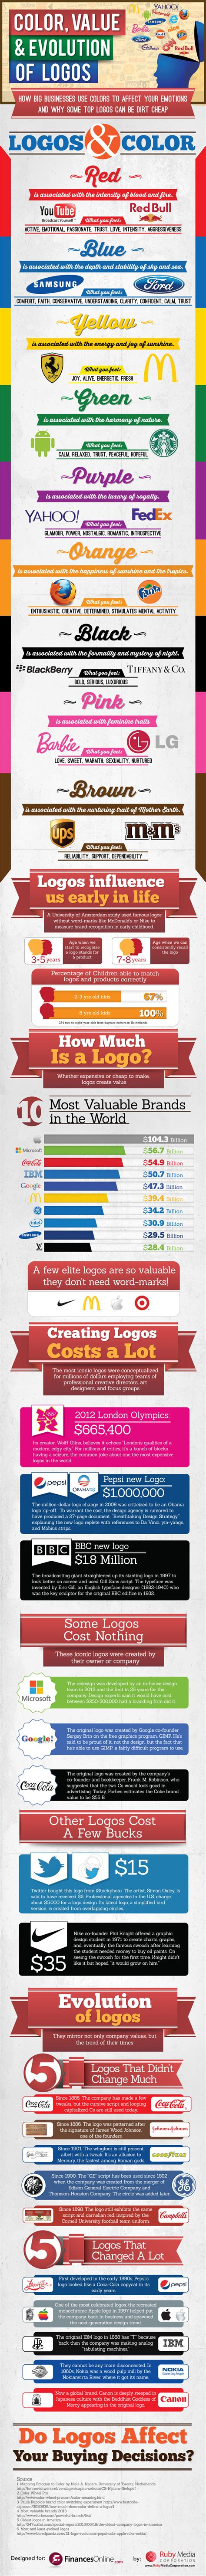 company colors what colors really in company logos infographic